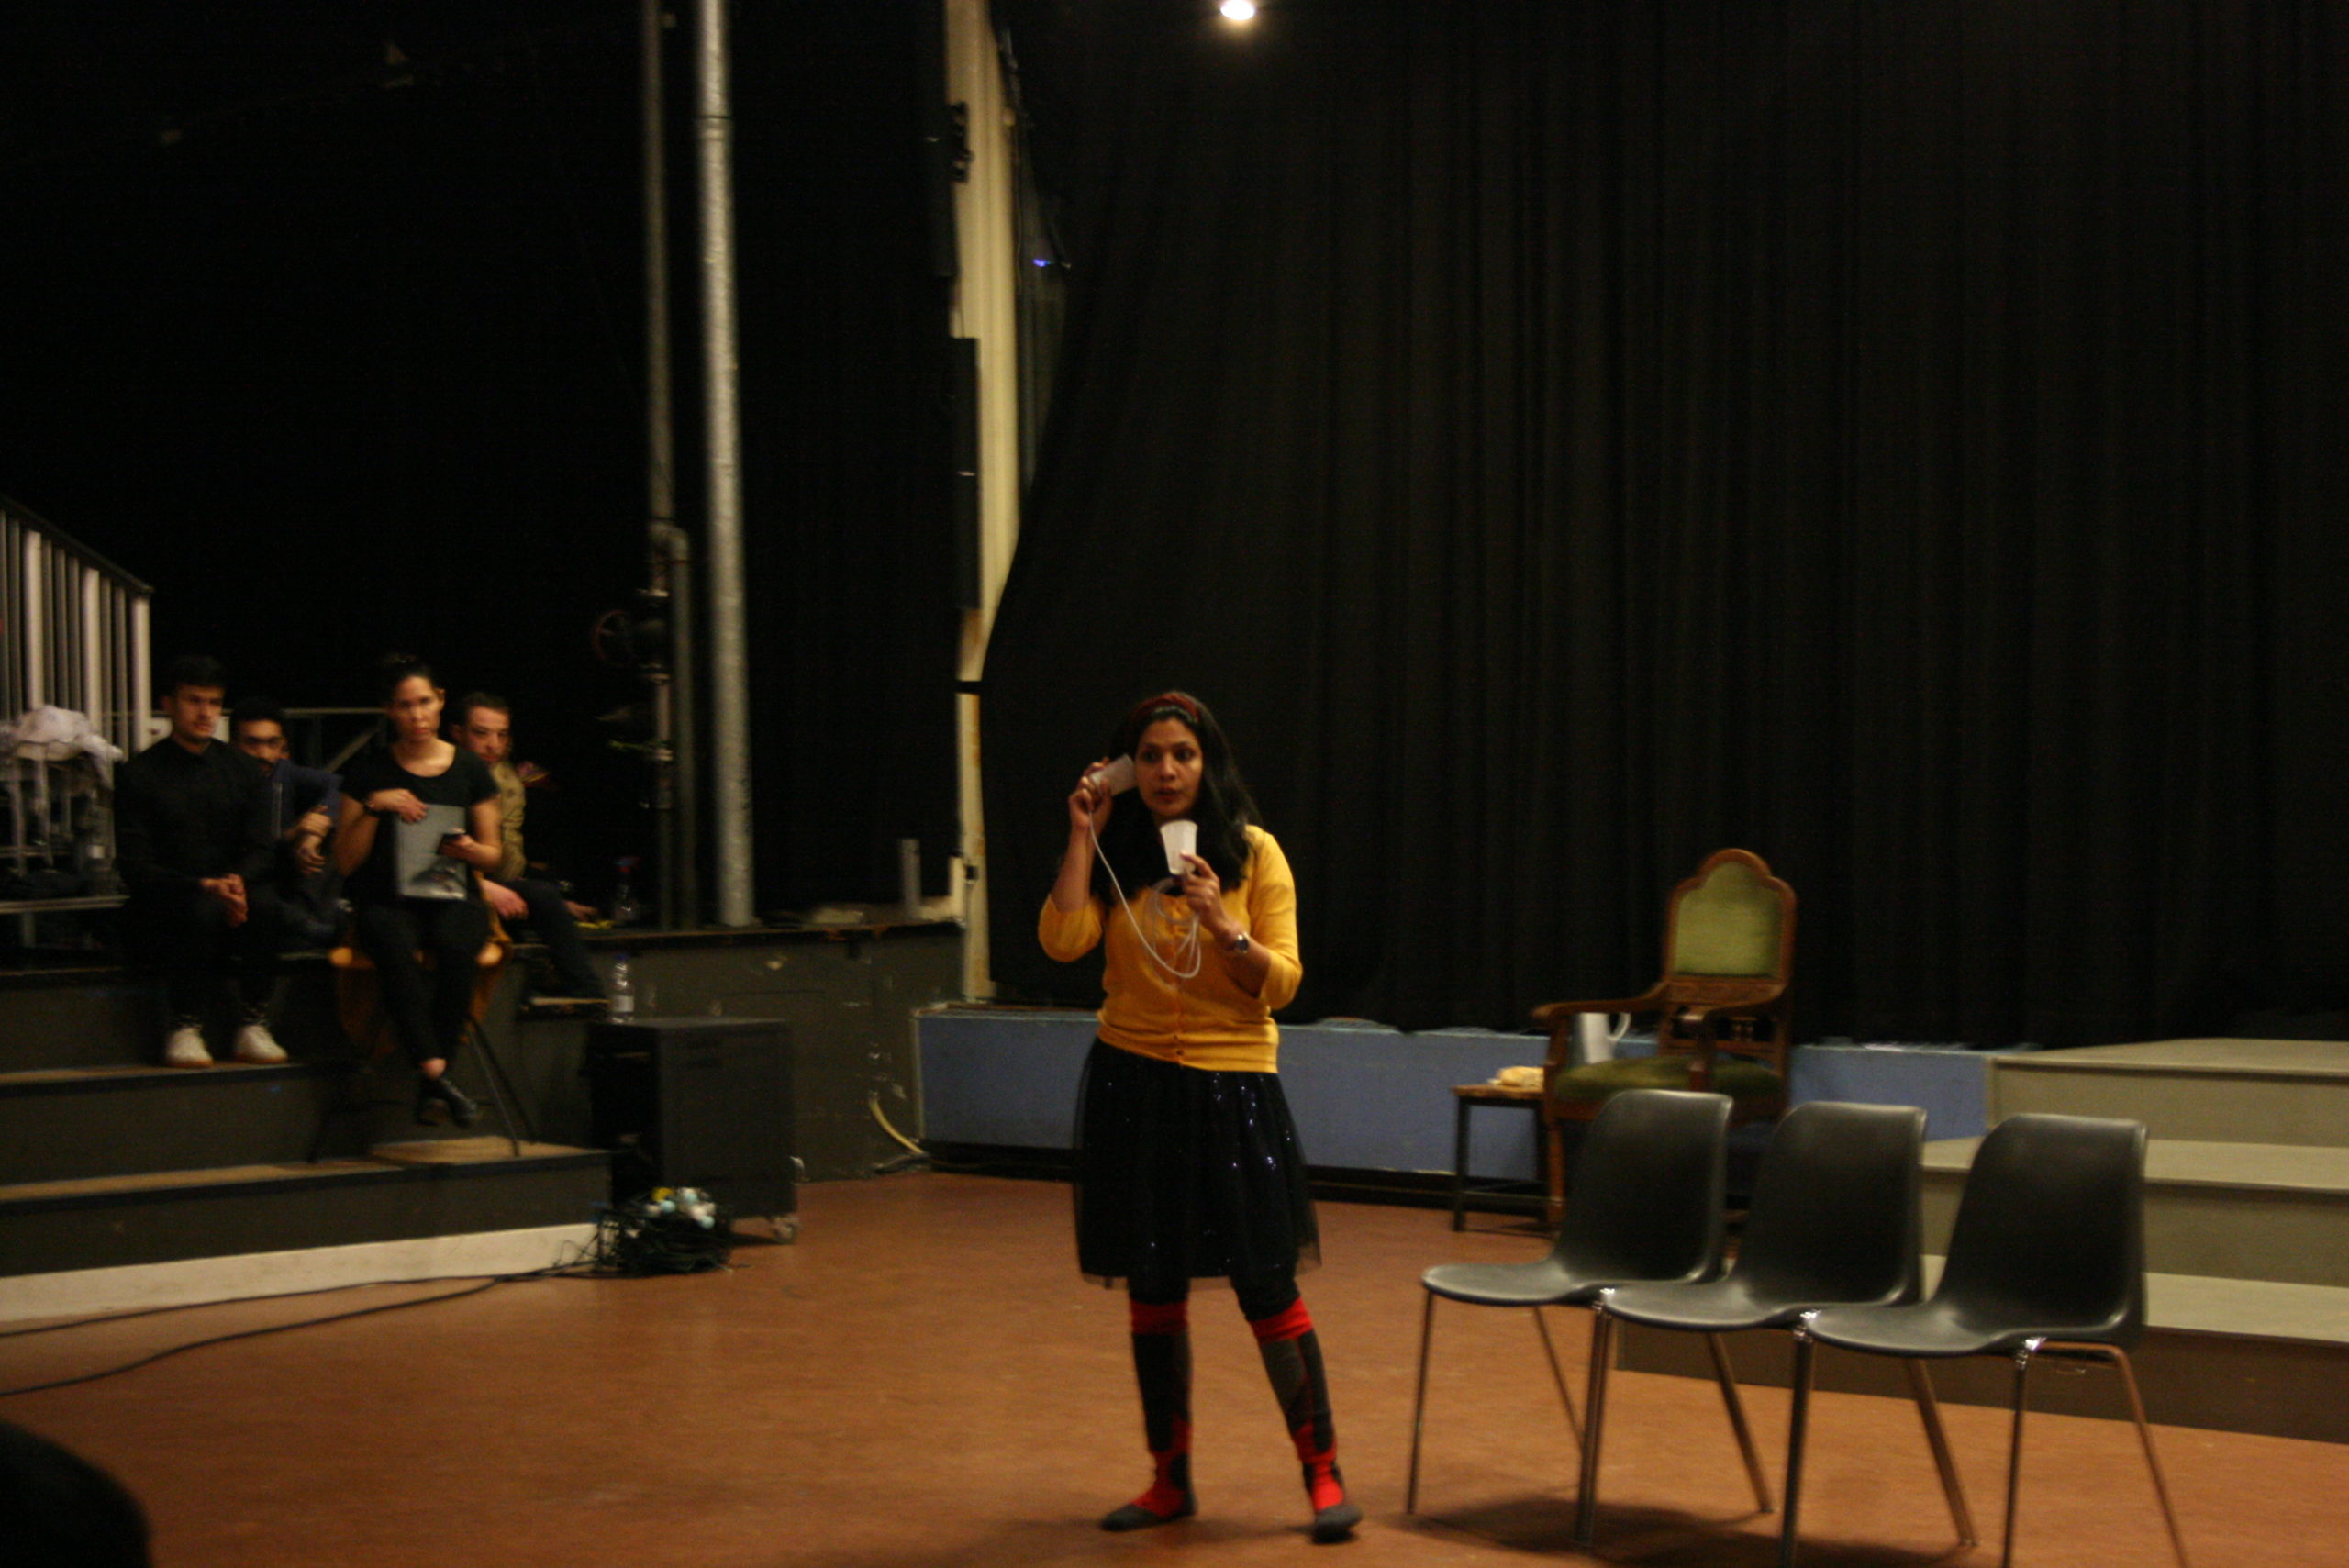 """Photo from the show """"Skin of our Teeth"""". A female actor on stage with a yellow cardigan holding a cup in front of her like it's a phone"""